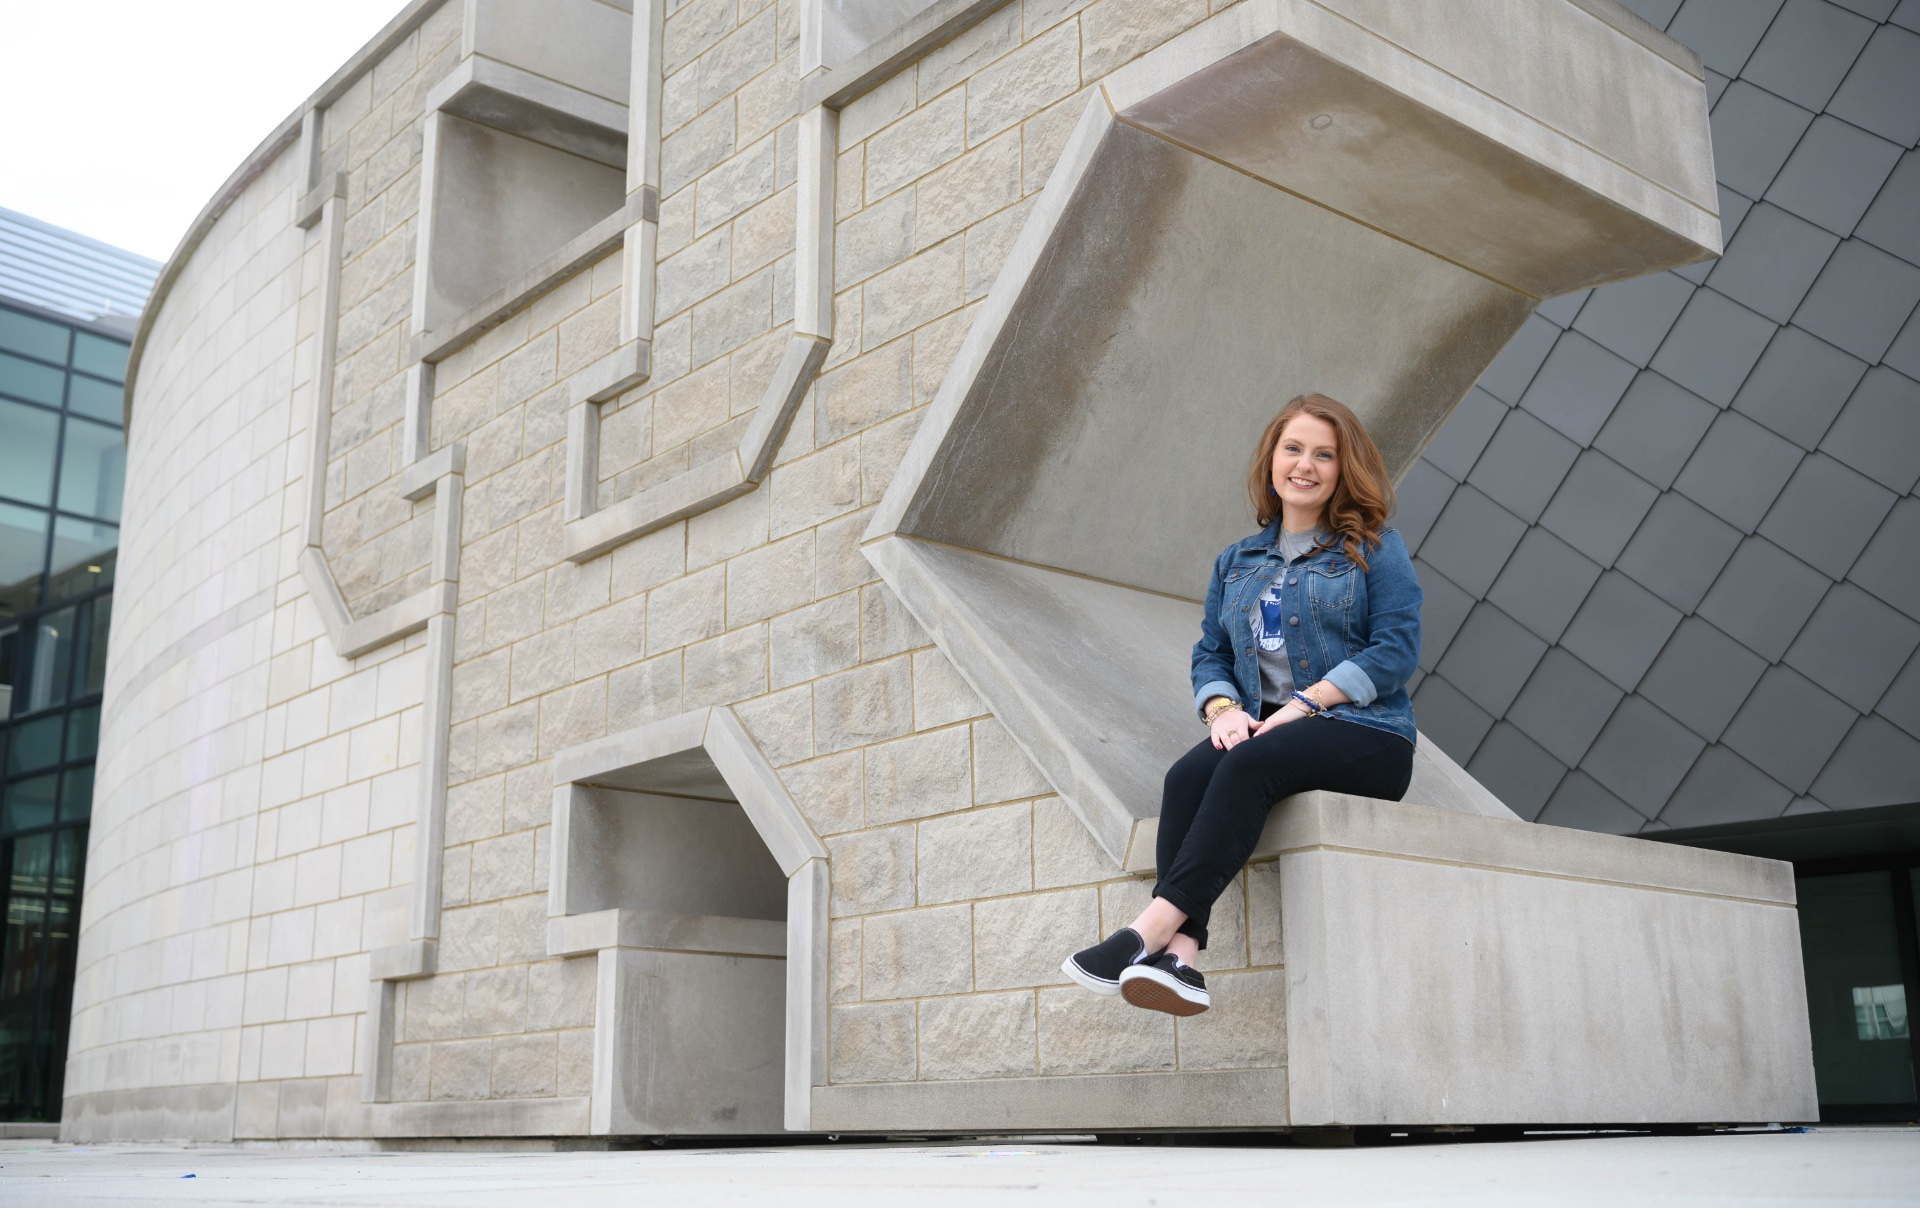 Fielden smiles at the camera as she sits on a giant sculpture of the UK logo outside the student center.